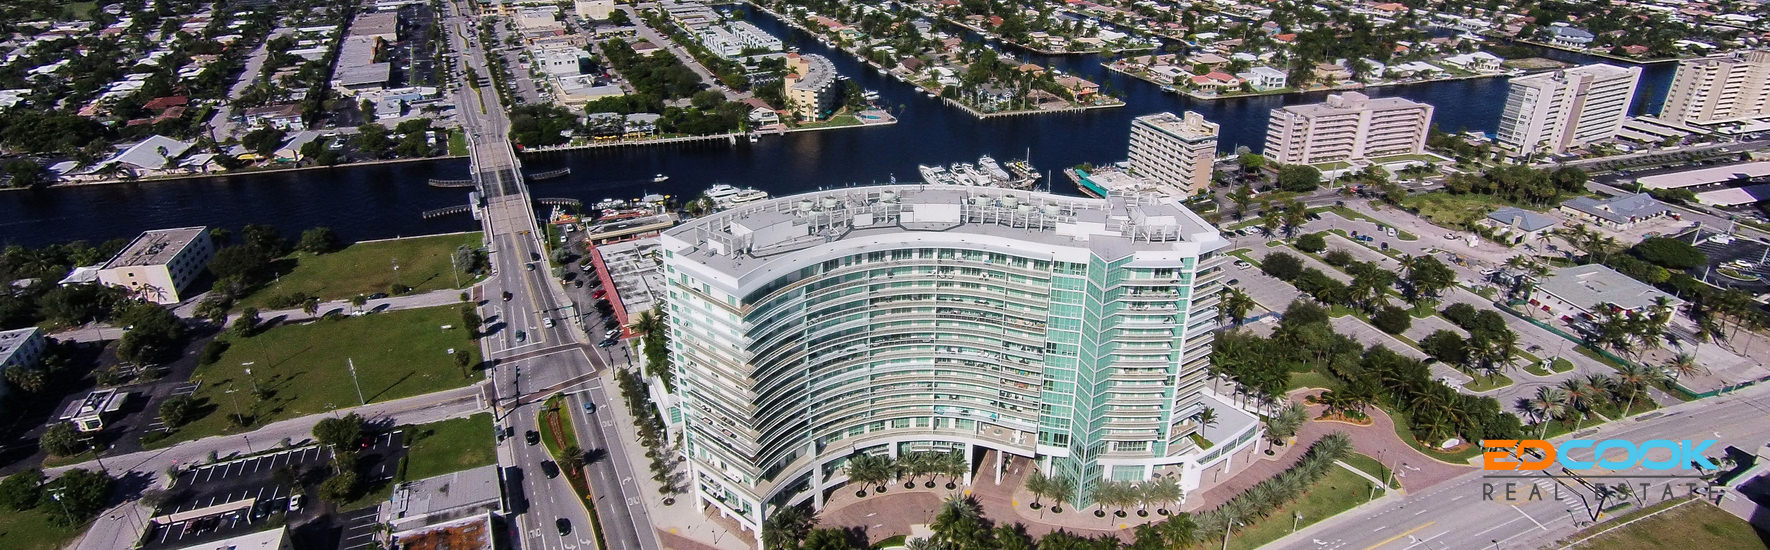 Ed-Cook-Real-Estate-Pompano-Beach-Aerial-West-1770x550